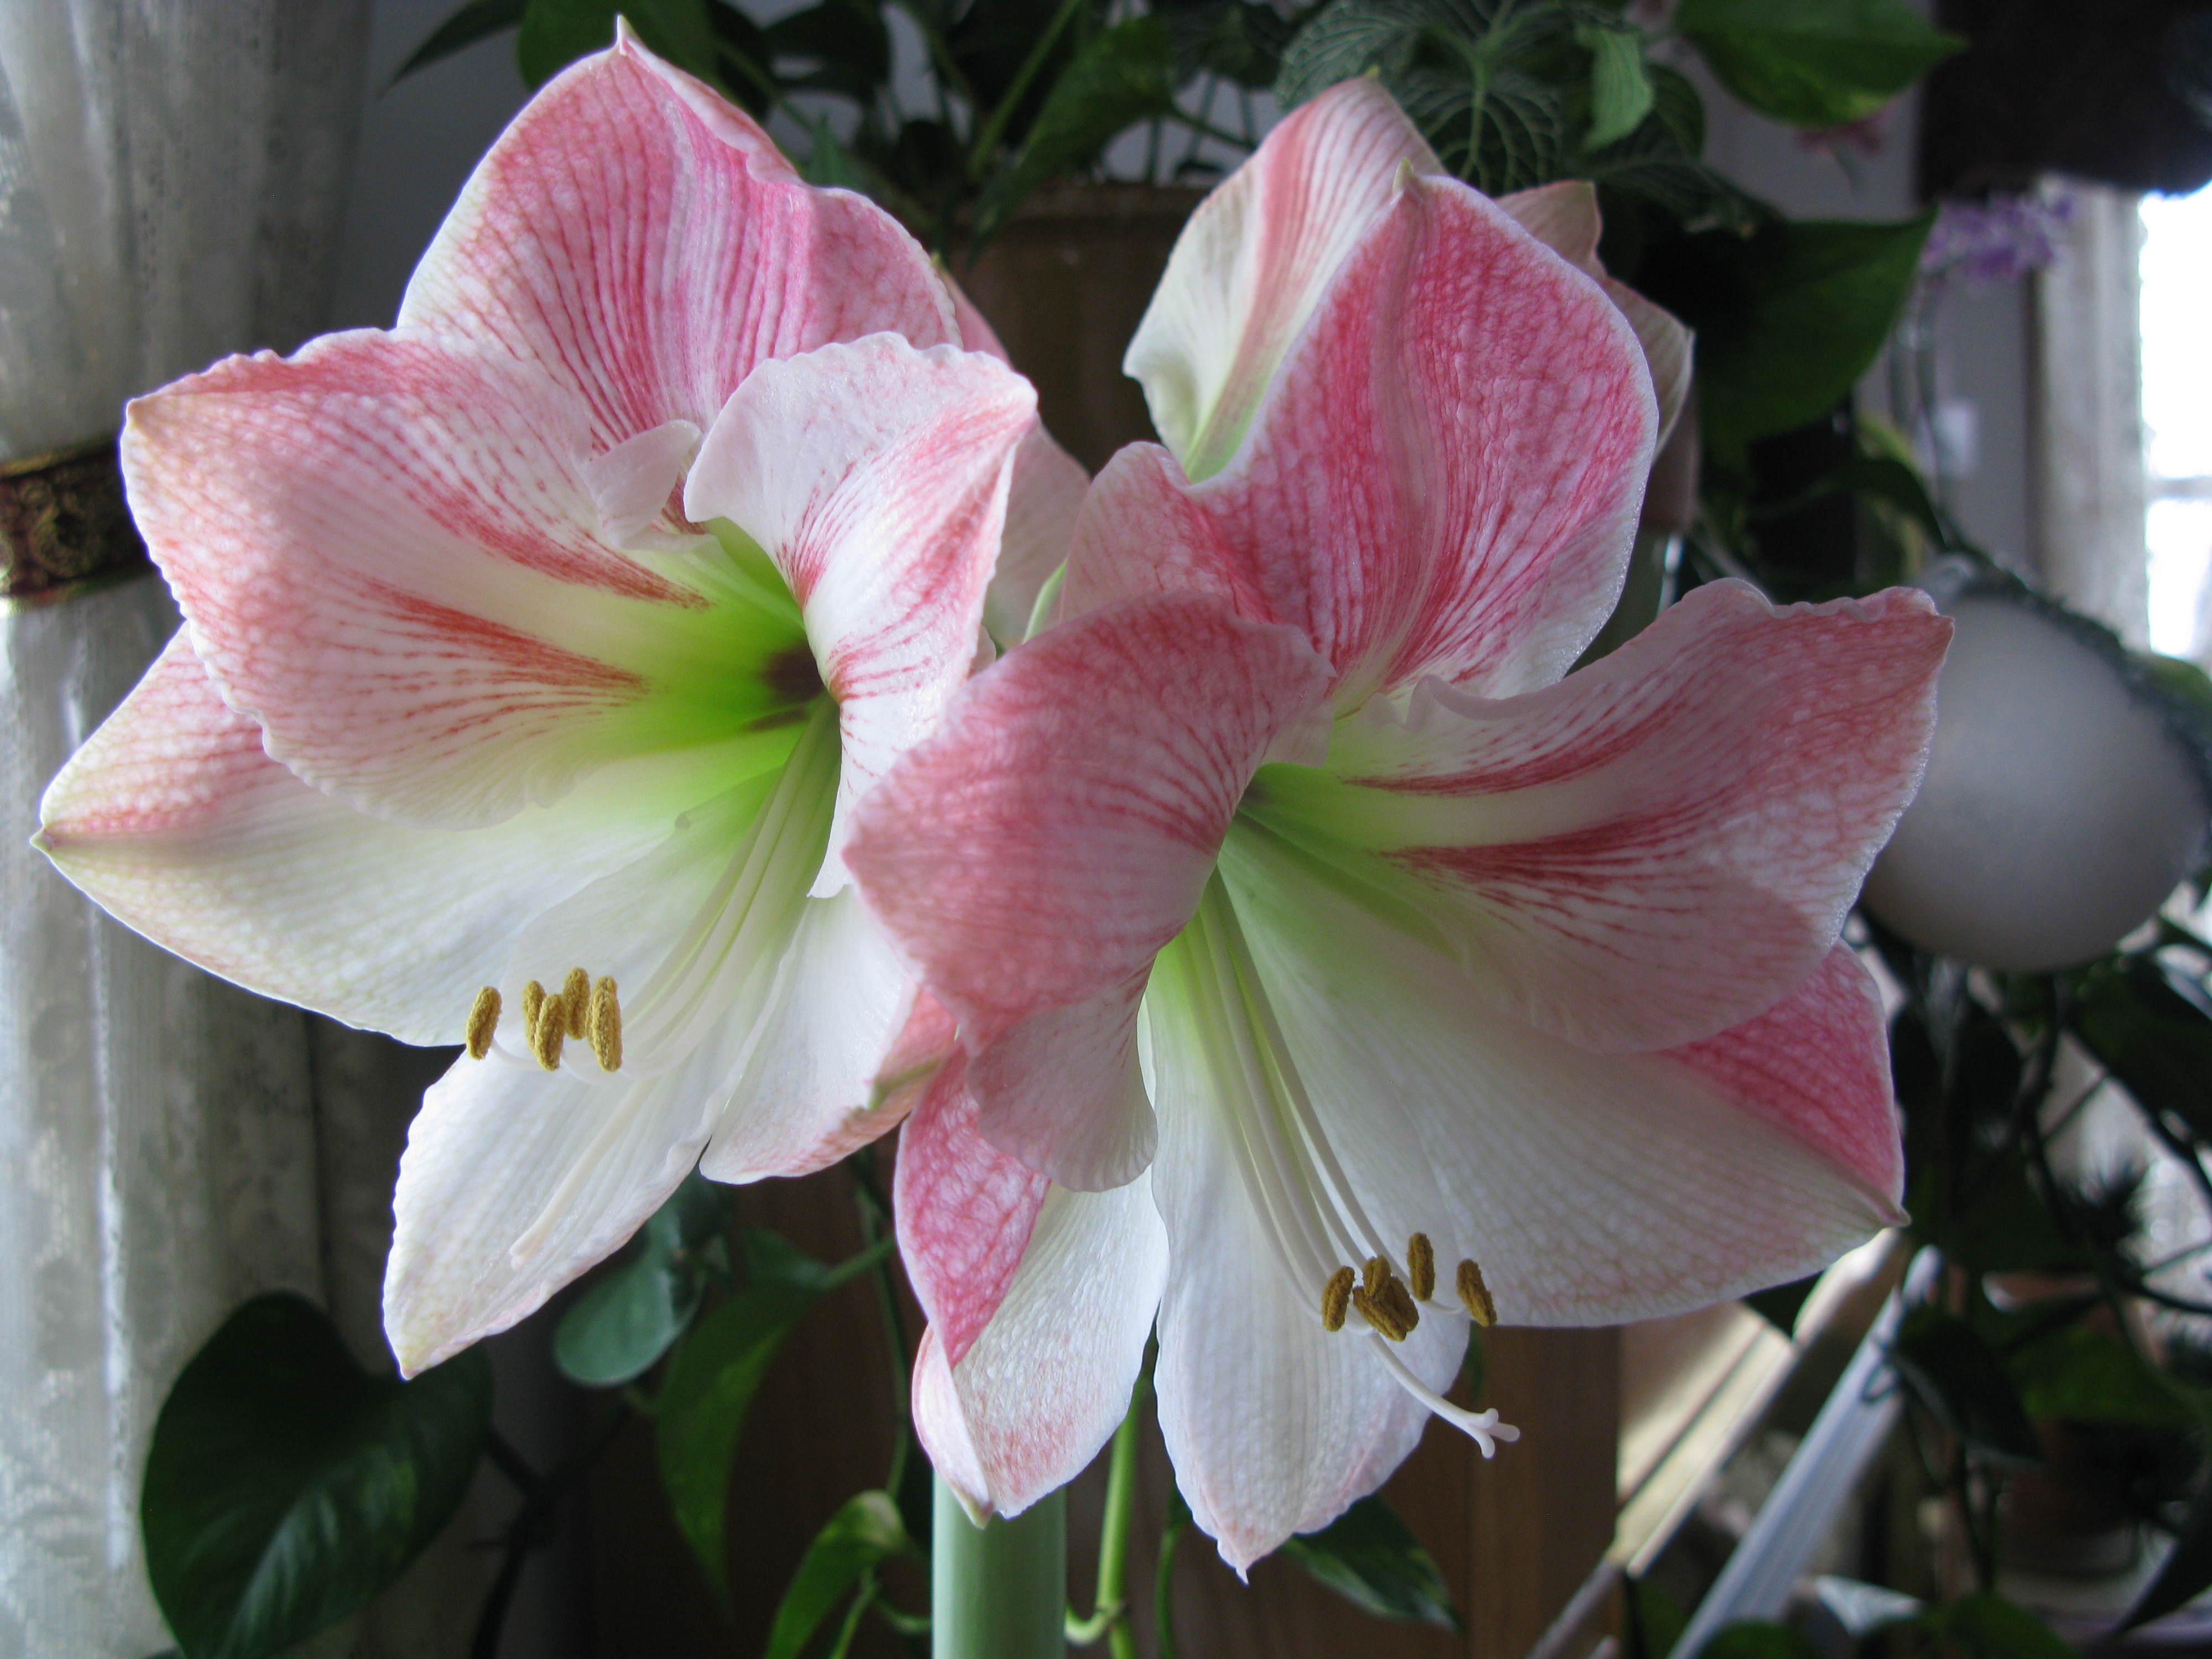 amaryllis apple blossom in bloom cosmos and cleome